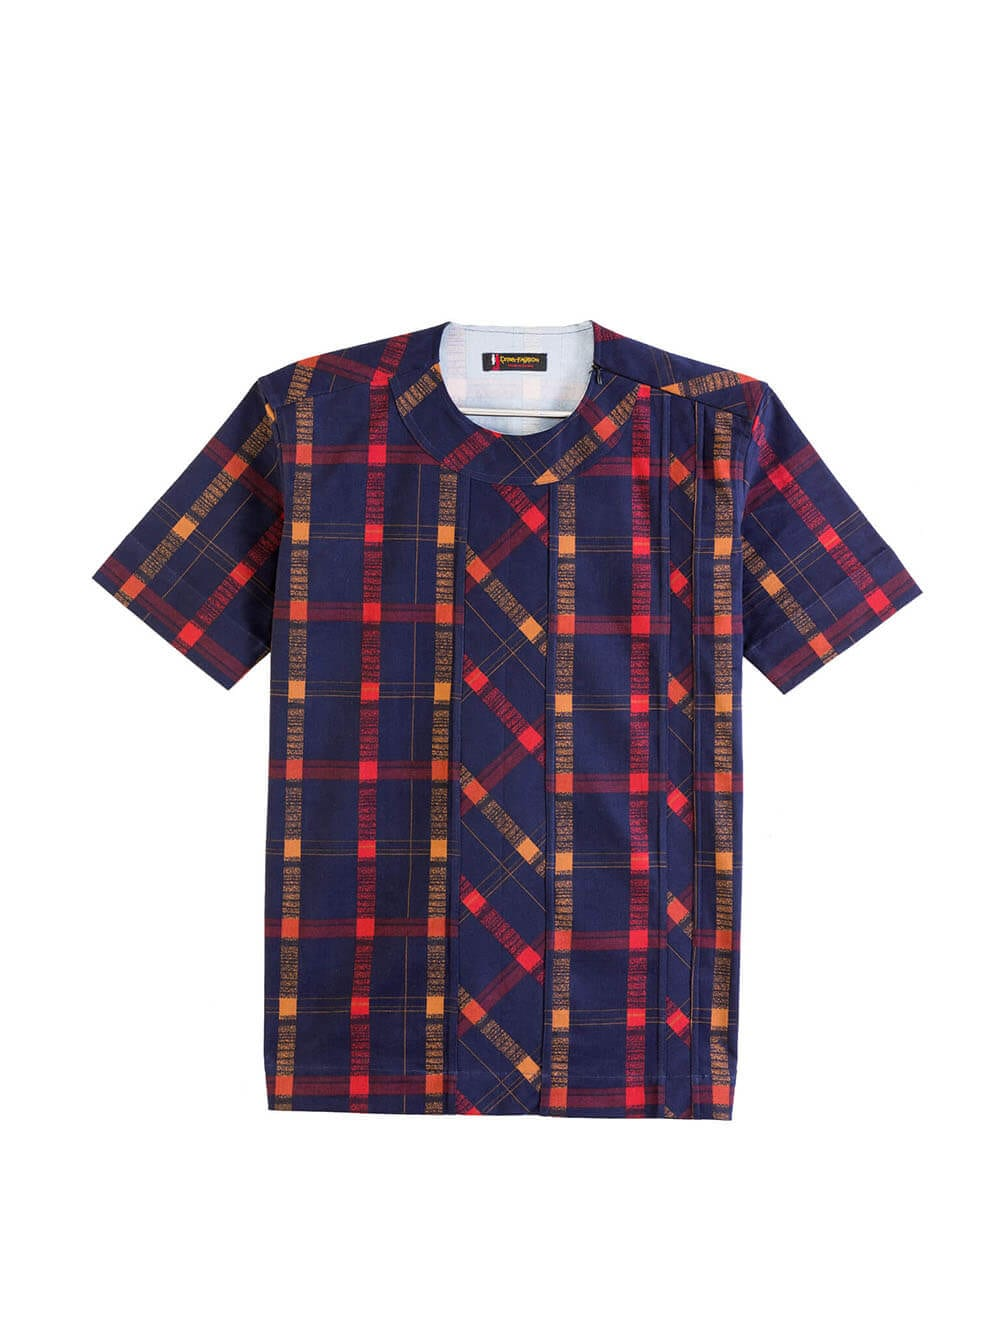 Men's trendy Navy blue and cola Plaids and stripes